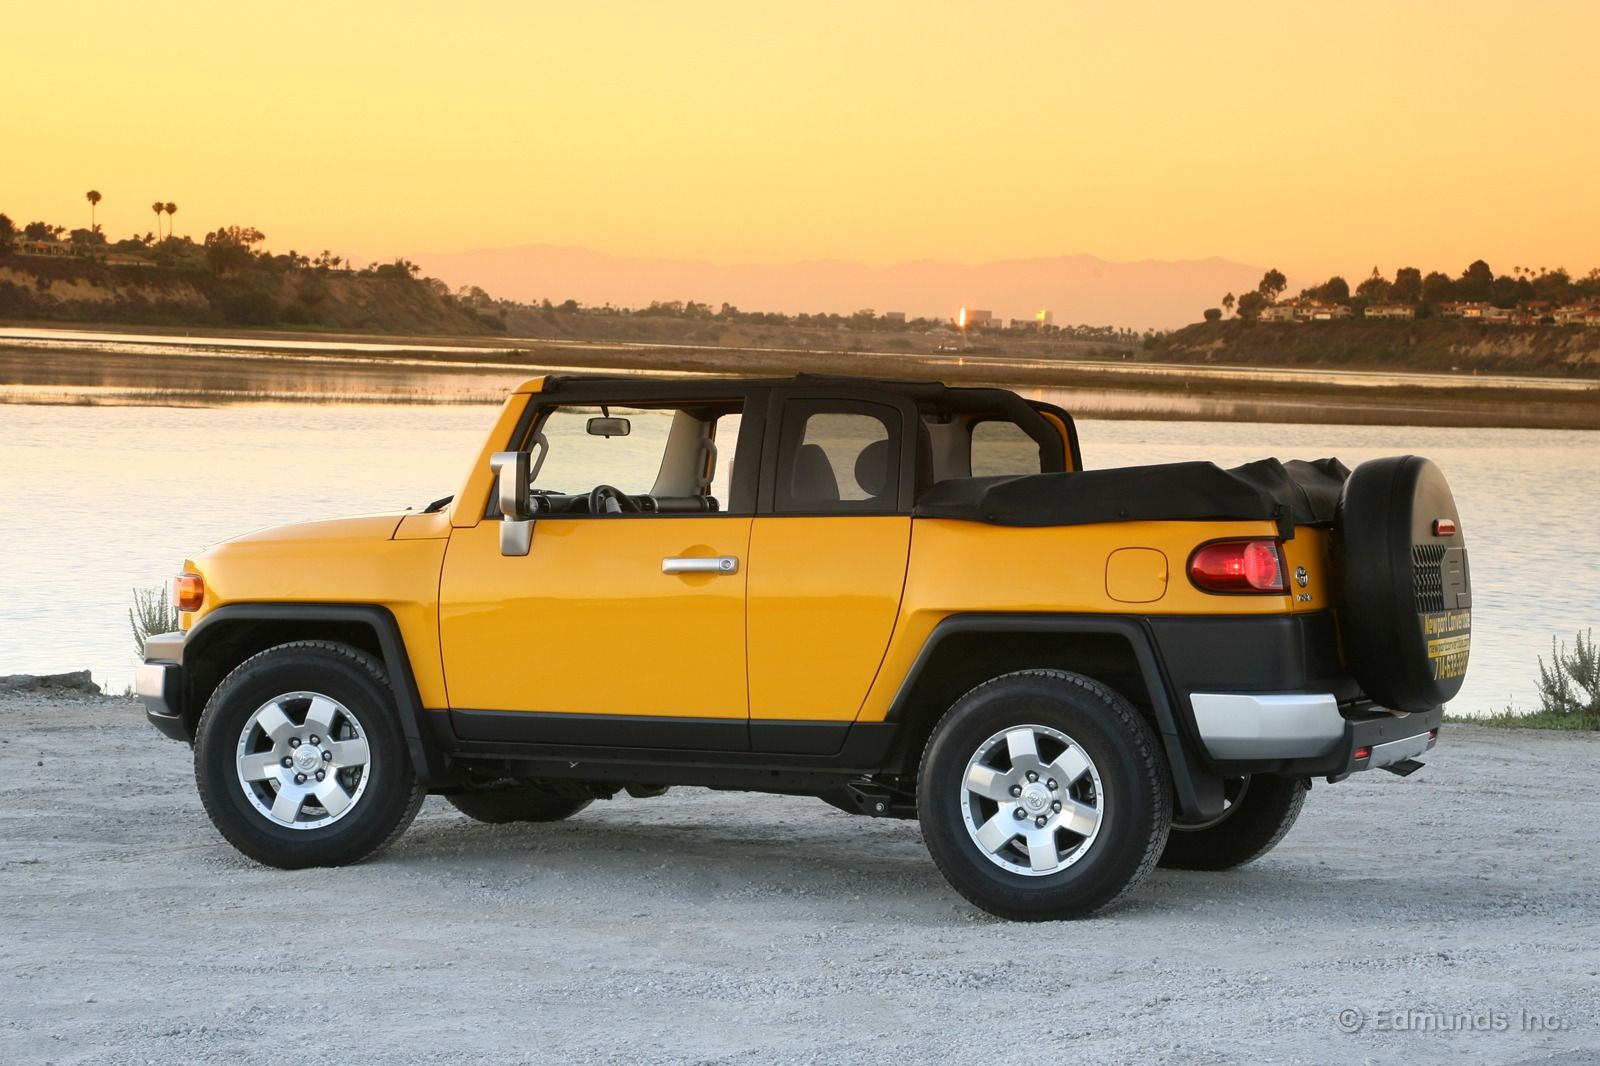 Used 2007 Toyota Fj Cruiser For Sale Near You Toyota Fj Cruiser Fj Cruiser 2007 Toyota Fj Cruiser